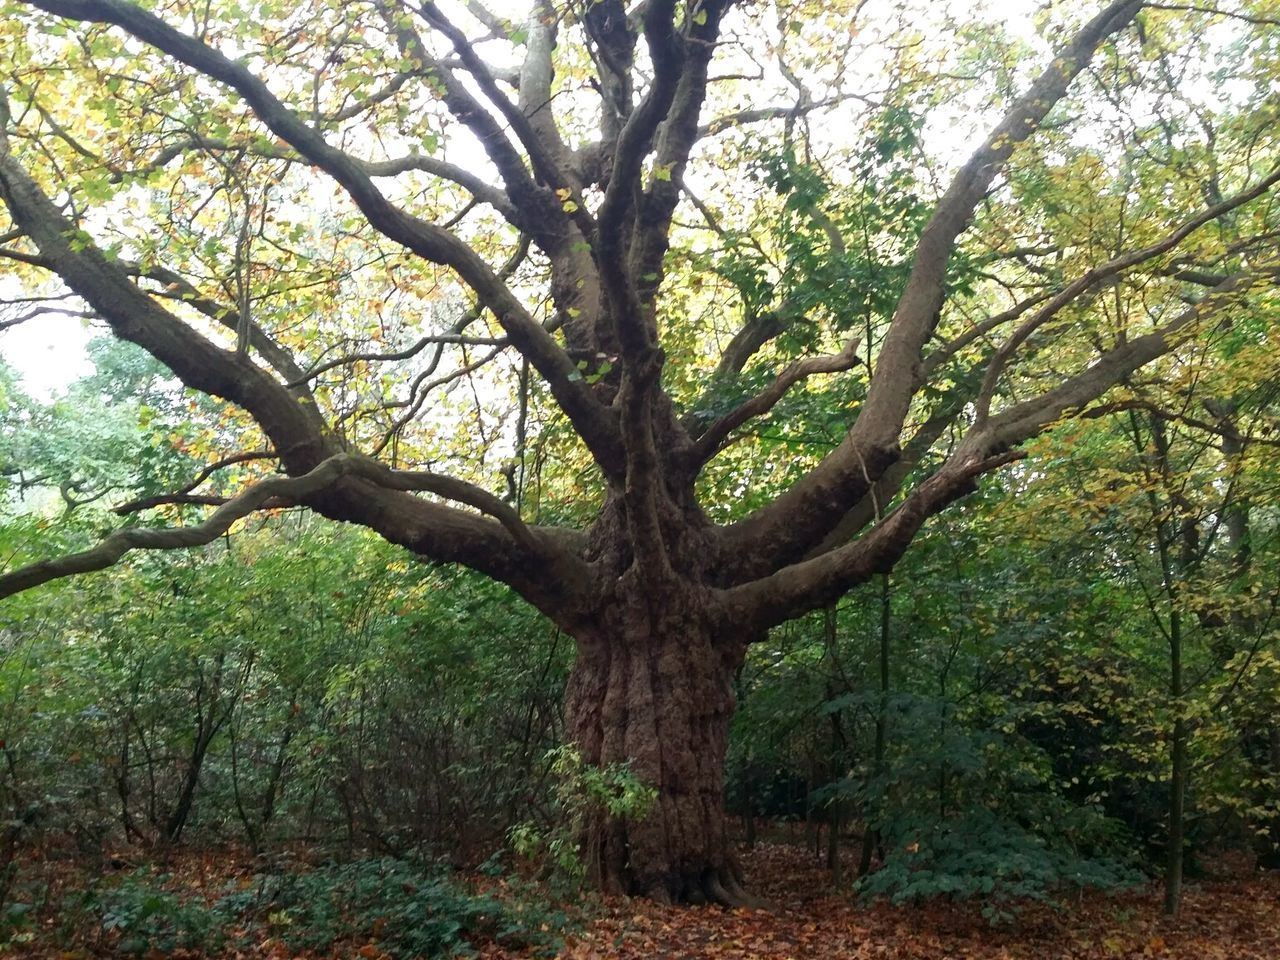 Tree Nature Growth Branch Tranquility Outdoors No People Day Beauty In Nature London Hampstead Heath Nature Autumn Beauty In Nature